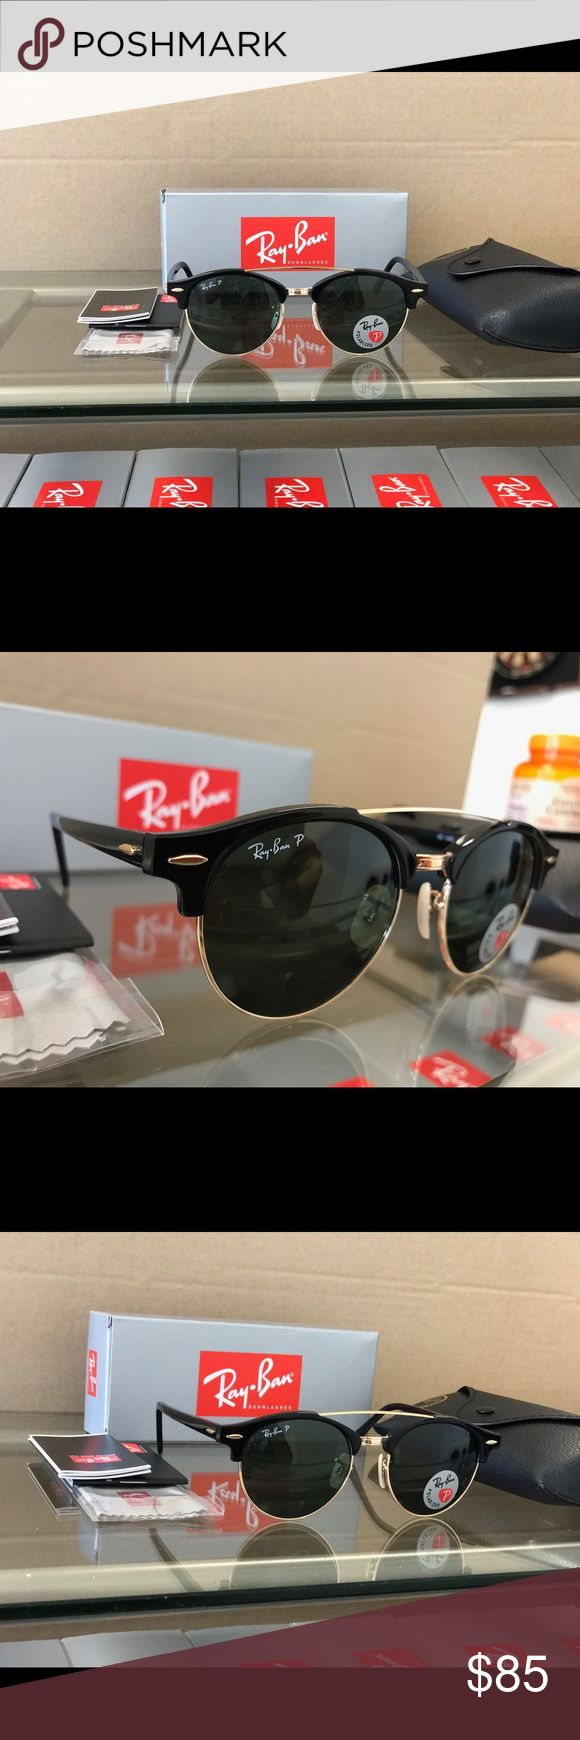 Authentic Polarized Ray-Ban Round Metal Sunglasses Get yourself a beautiful pair of brand new Polarized Ray-Ban sunglasses for 65% off retail price! Please refer to the details below to get a better idea of what you are purchasing:  •These are 100% Brand